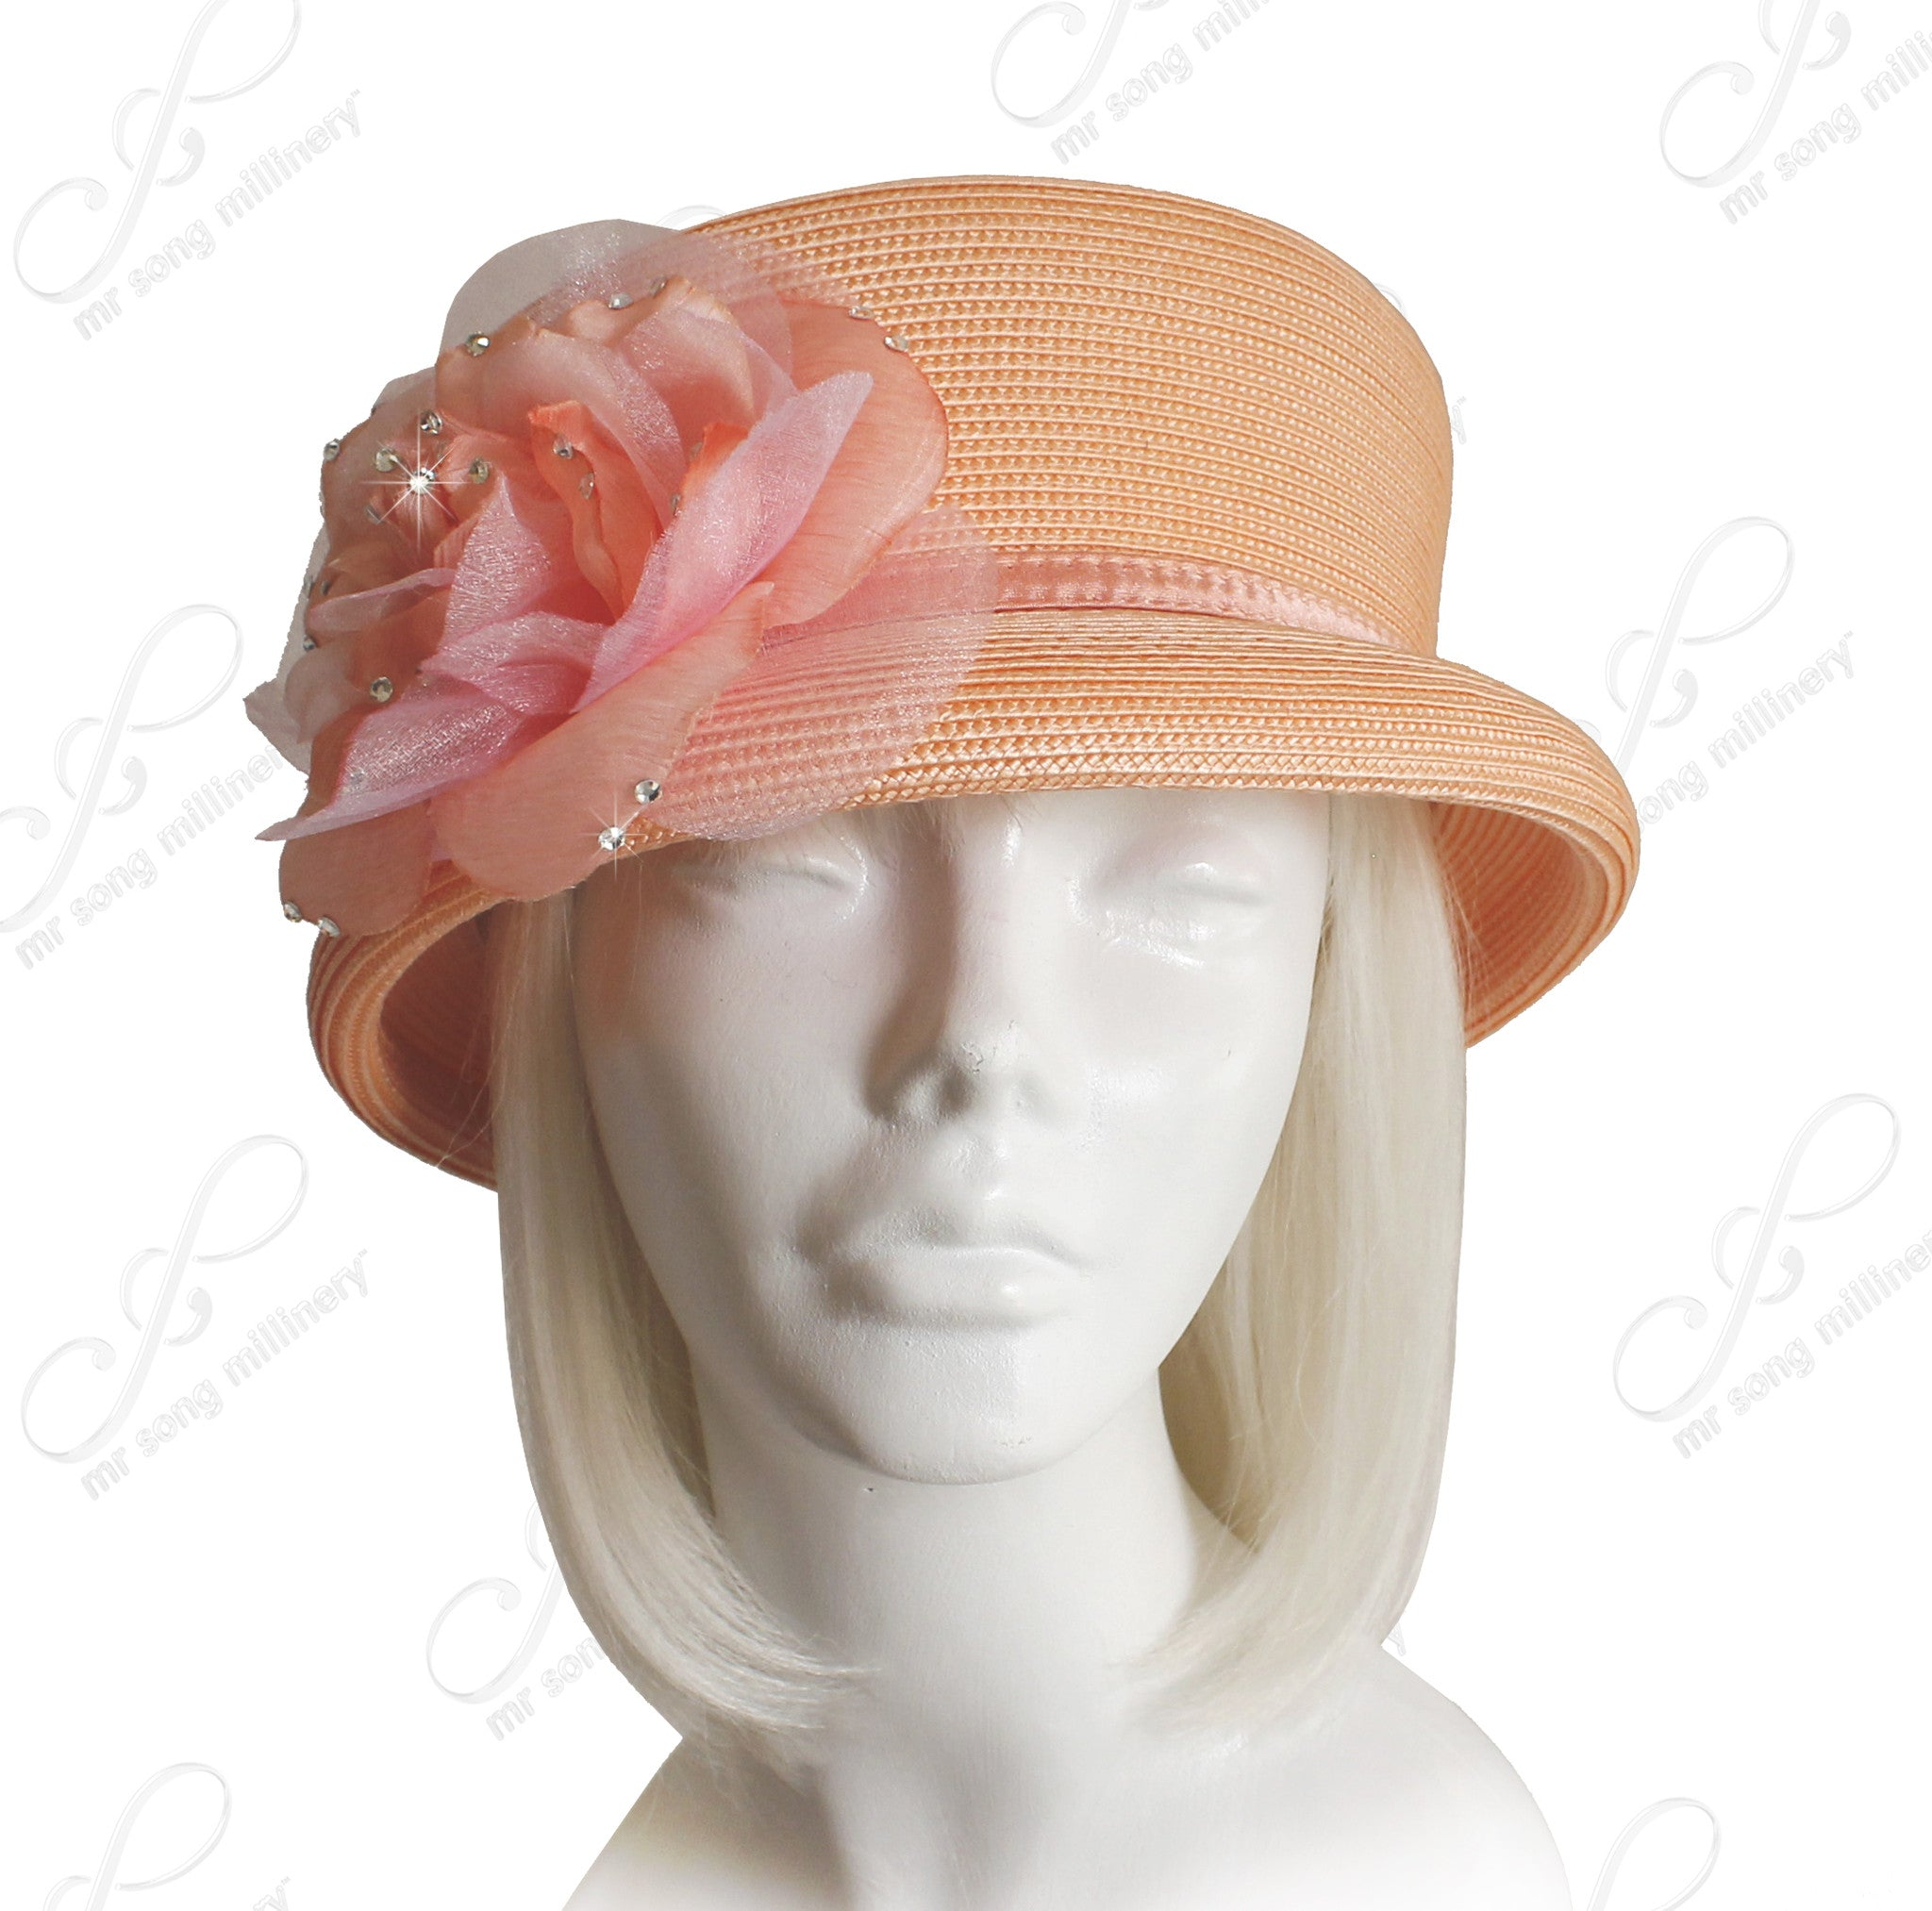 Mr. Song Millinery Straw-Tagline Roll Tiffany Brim Hat W/ Organza Flower Accent - Peach